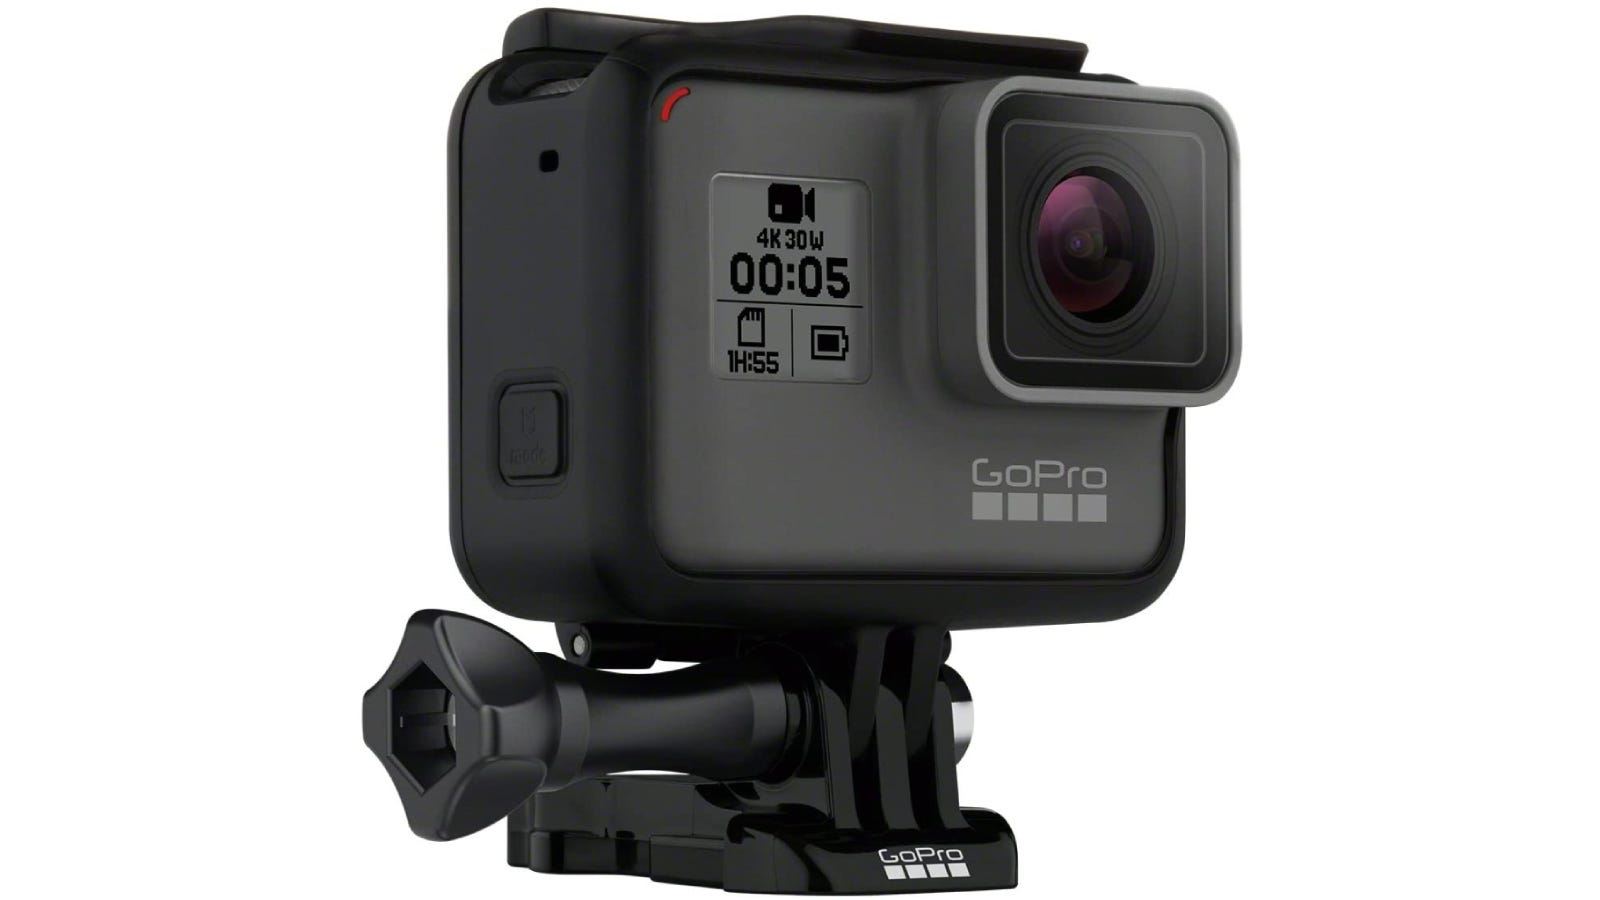 square gray and black camera on a mount